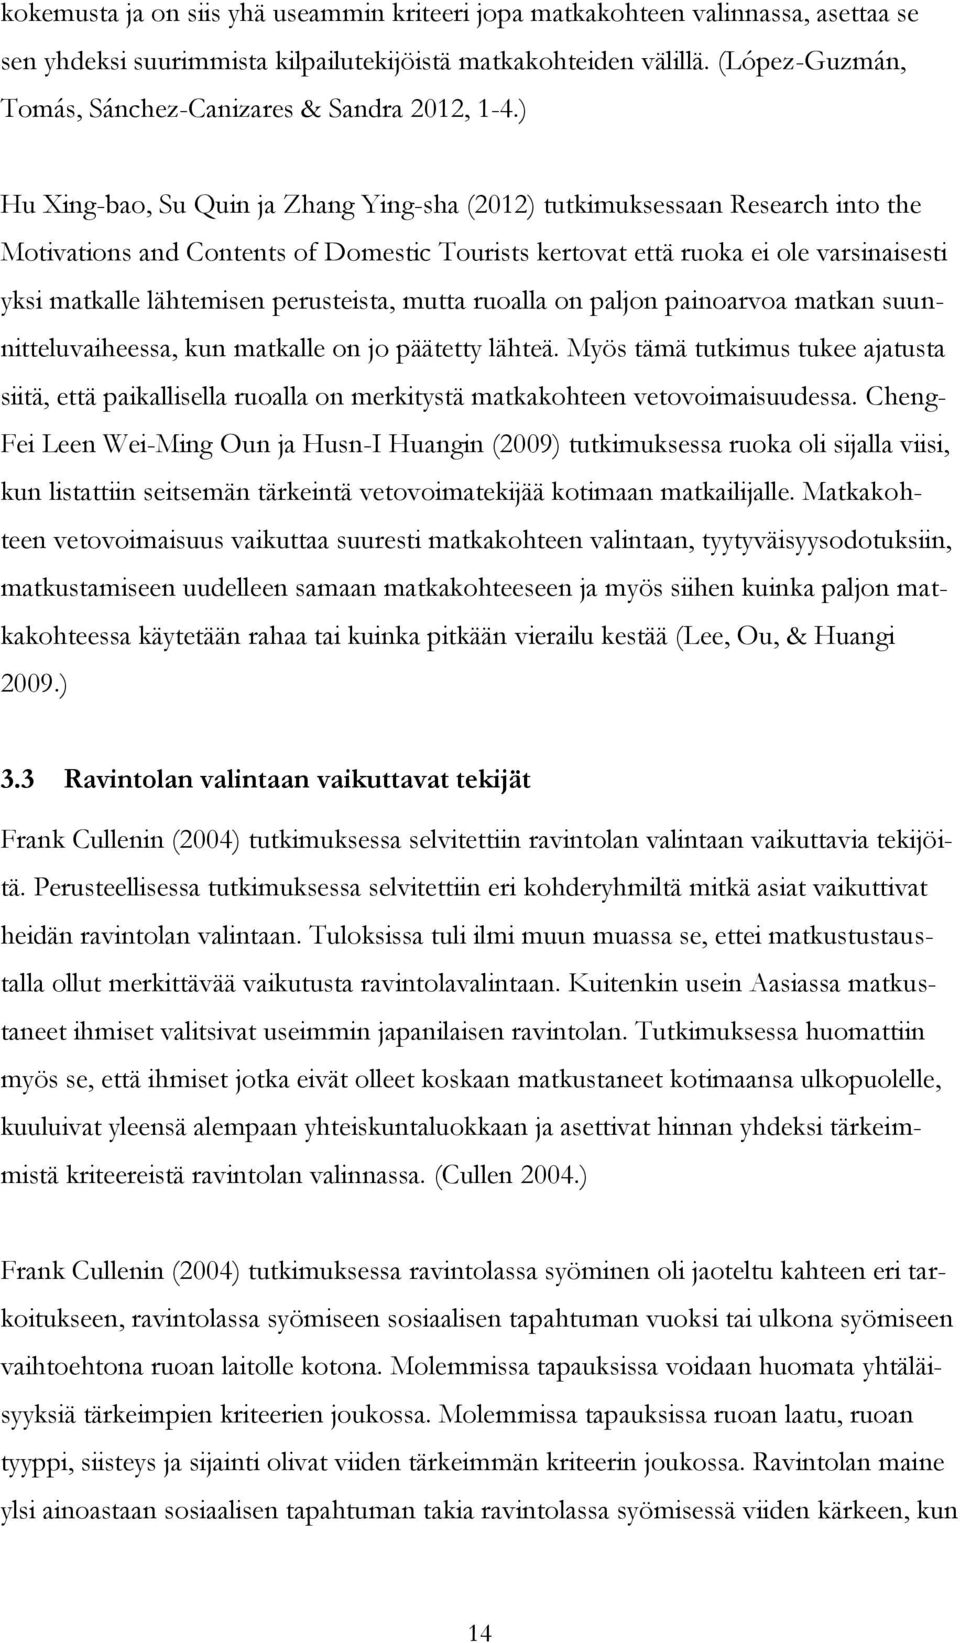 ) Hu Xing-bao, Su Quin ja Zhang Ying-sha (2012) tutkimuksessaan Research into the Motivations and Contents of Domestic Tourists kertovat että ruoka ei ole varsinaisesti yksi matkalle lähtemisen